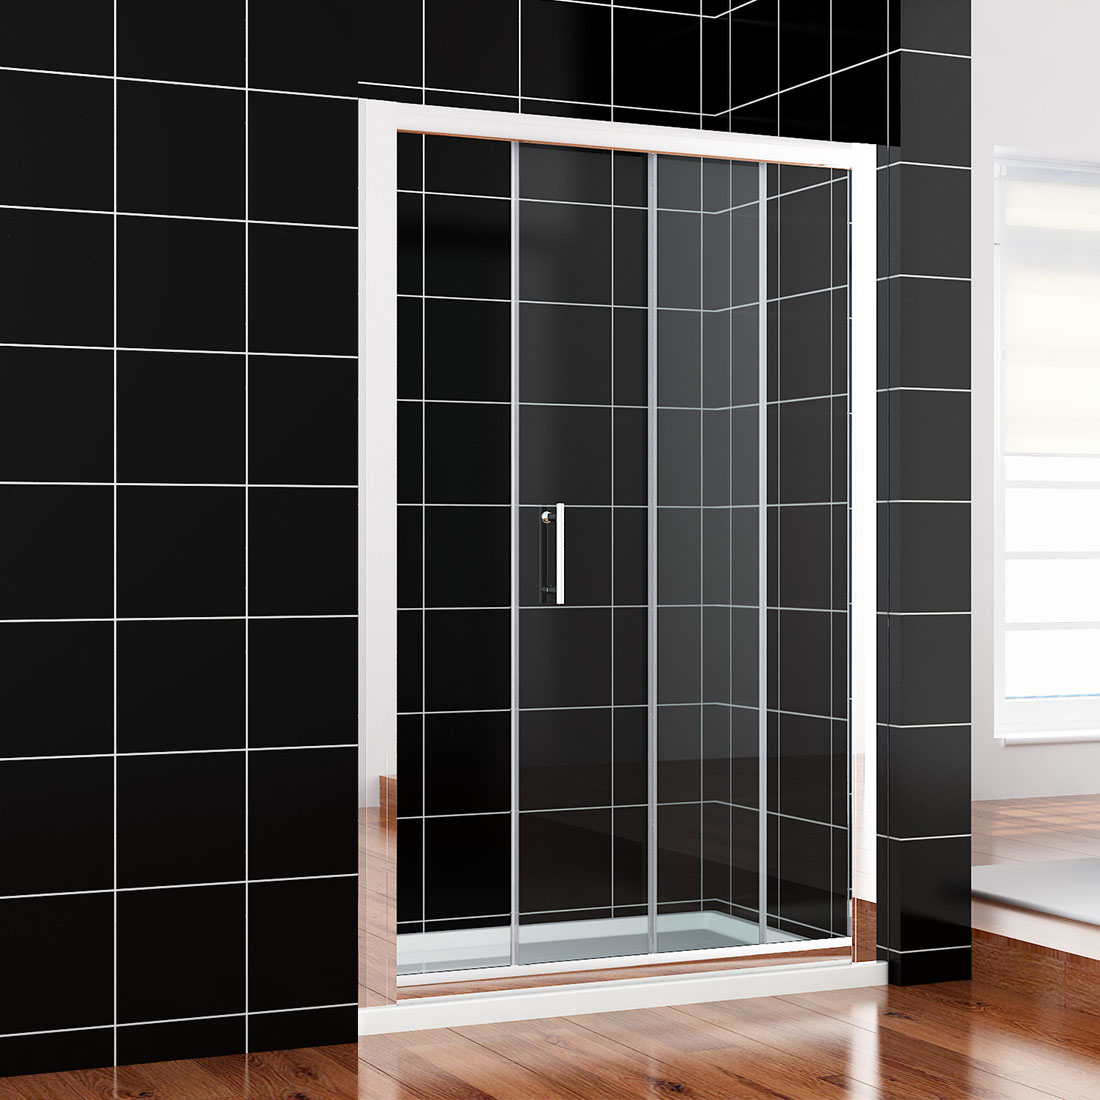 Single double sliding walk in shower enclosure screen door for Double sliding screen door